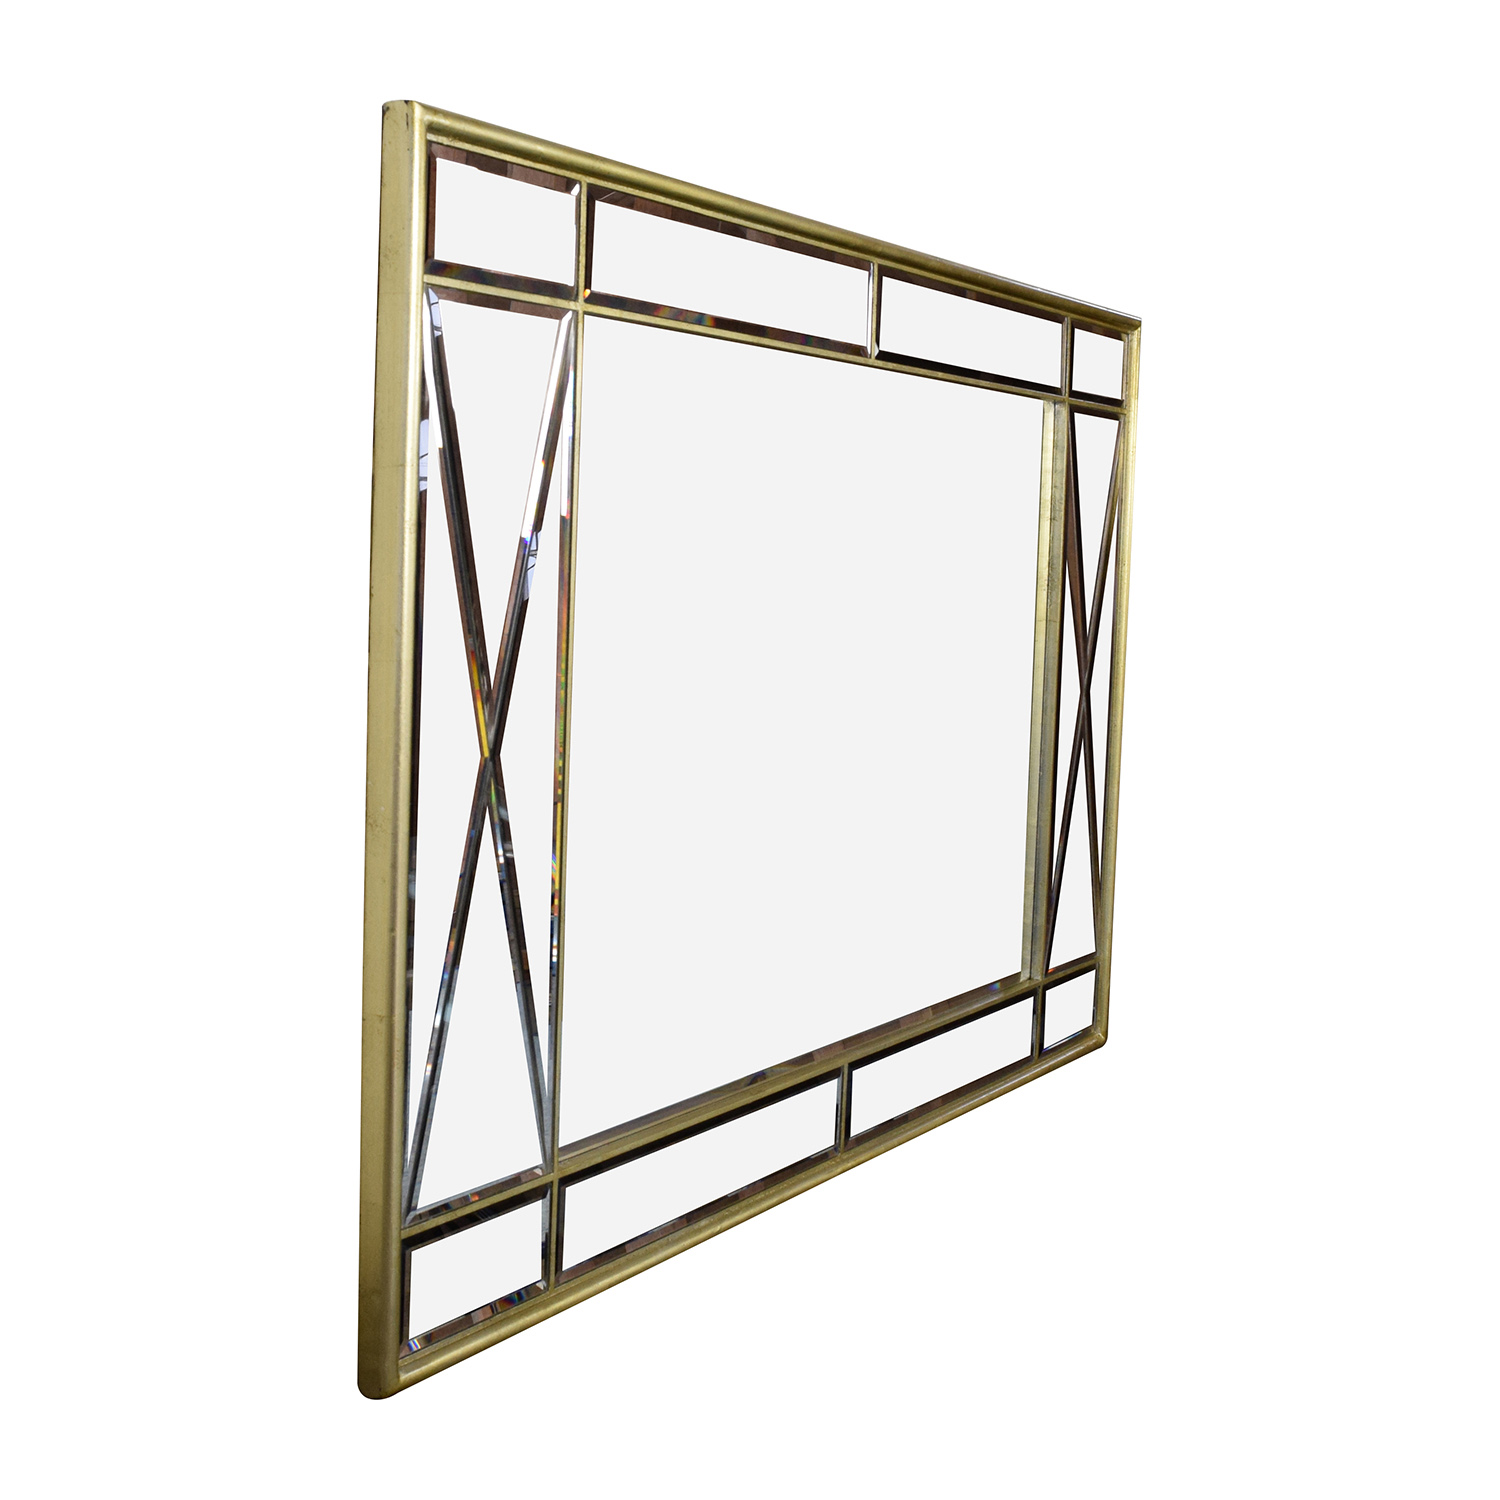 Macy's Macy's Ailey Gold Framed  Mirror on sale